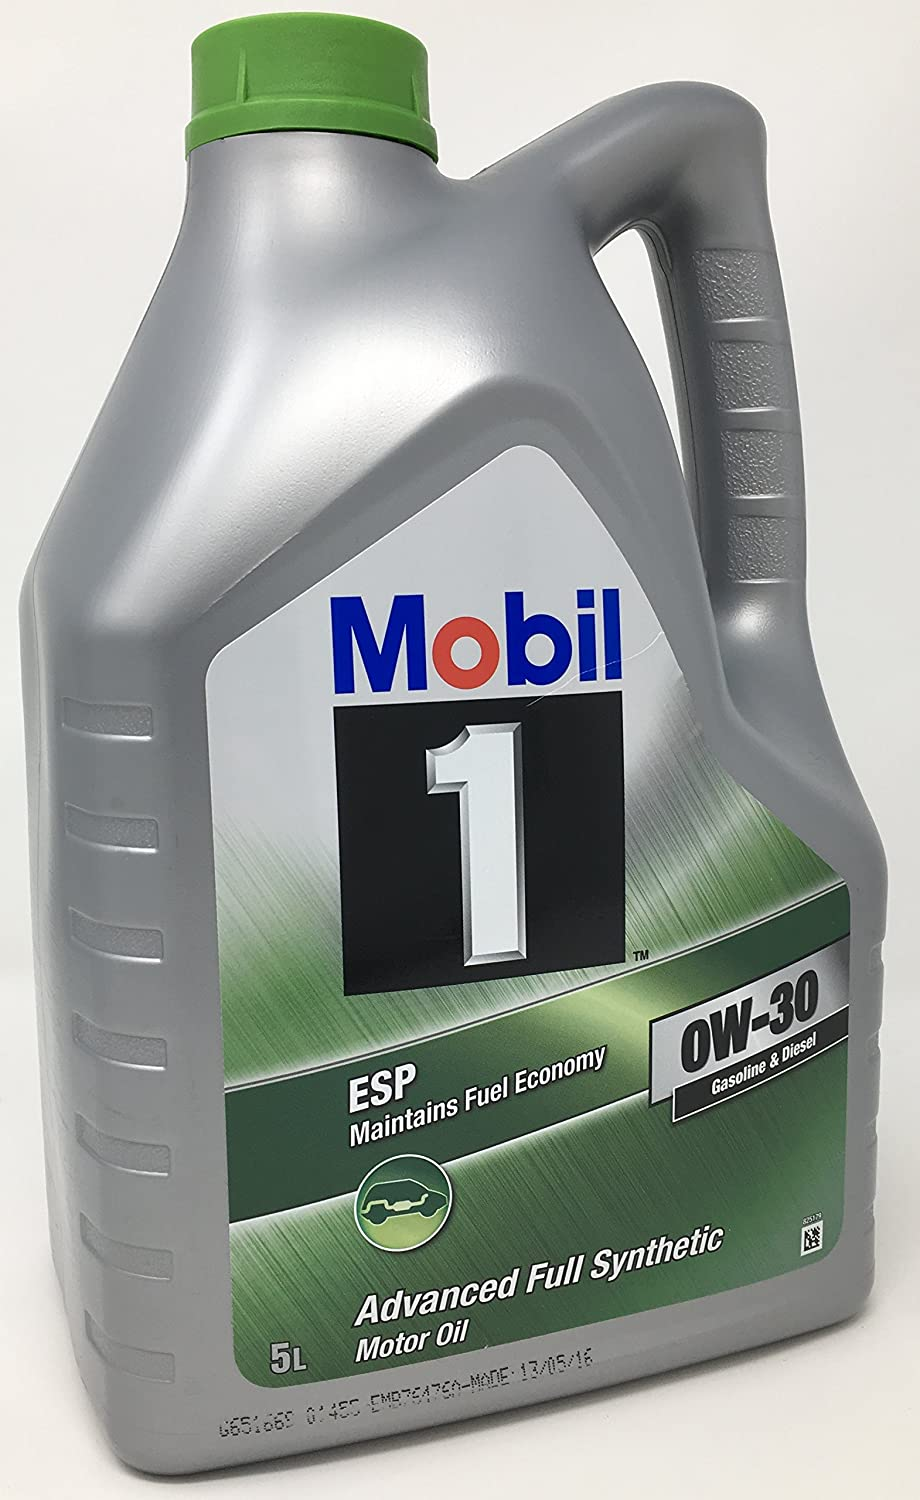 Aceite para motor Mobil 1 ESP 0W-30 Advance Fully Synthetic, 5 litros: Amazon.es: Coche y moto